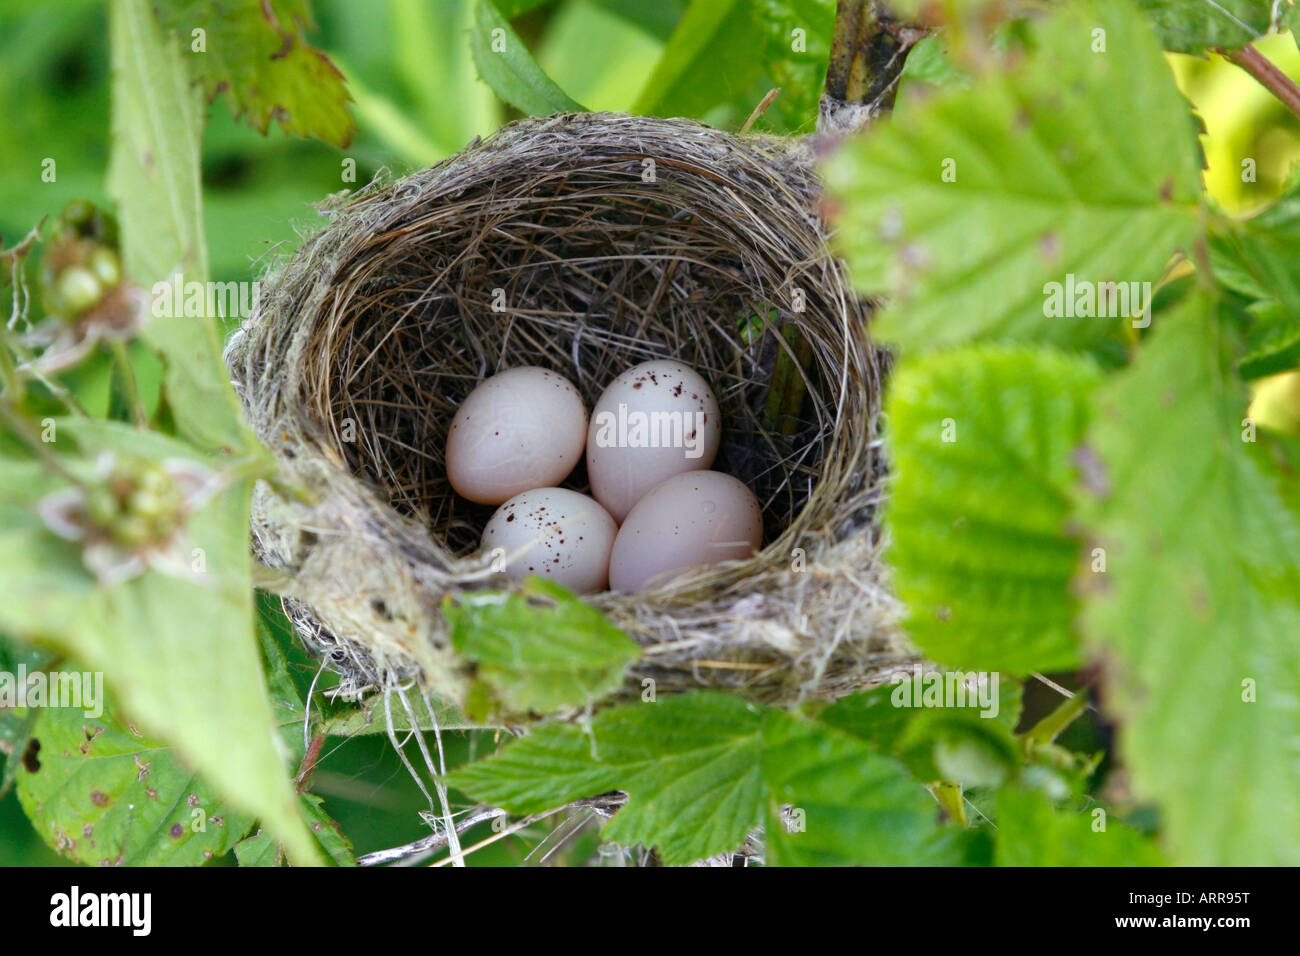 Willow Flycatcher Nest - Stock Image